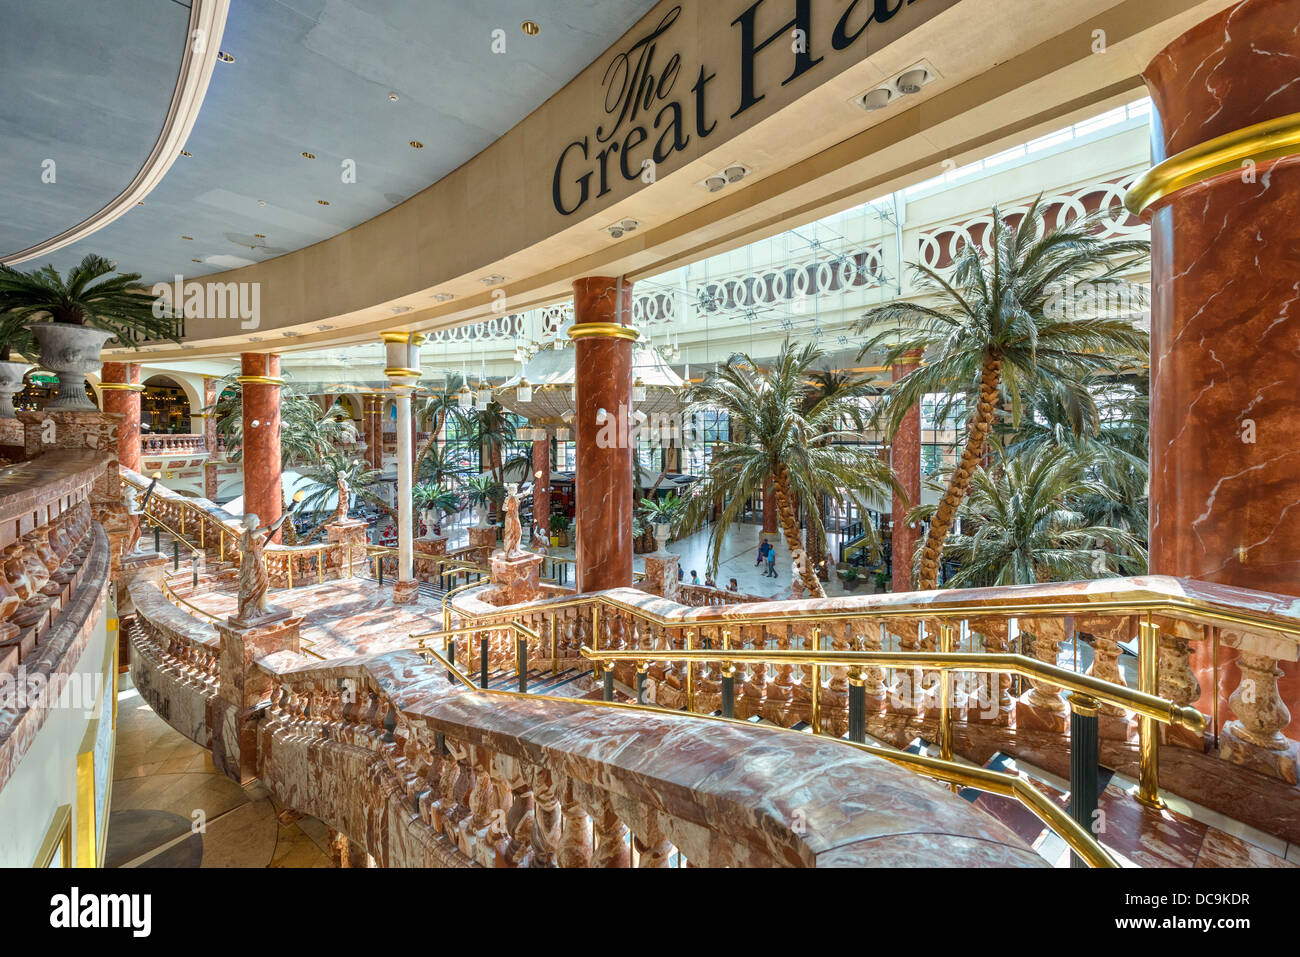 The Great Hall inside The Trafford Centre shopping complex, Dumplington, Greater Manchester, England, UK - Stock Image